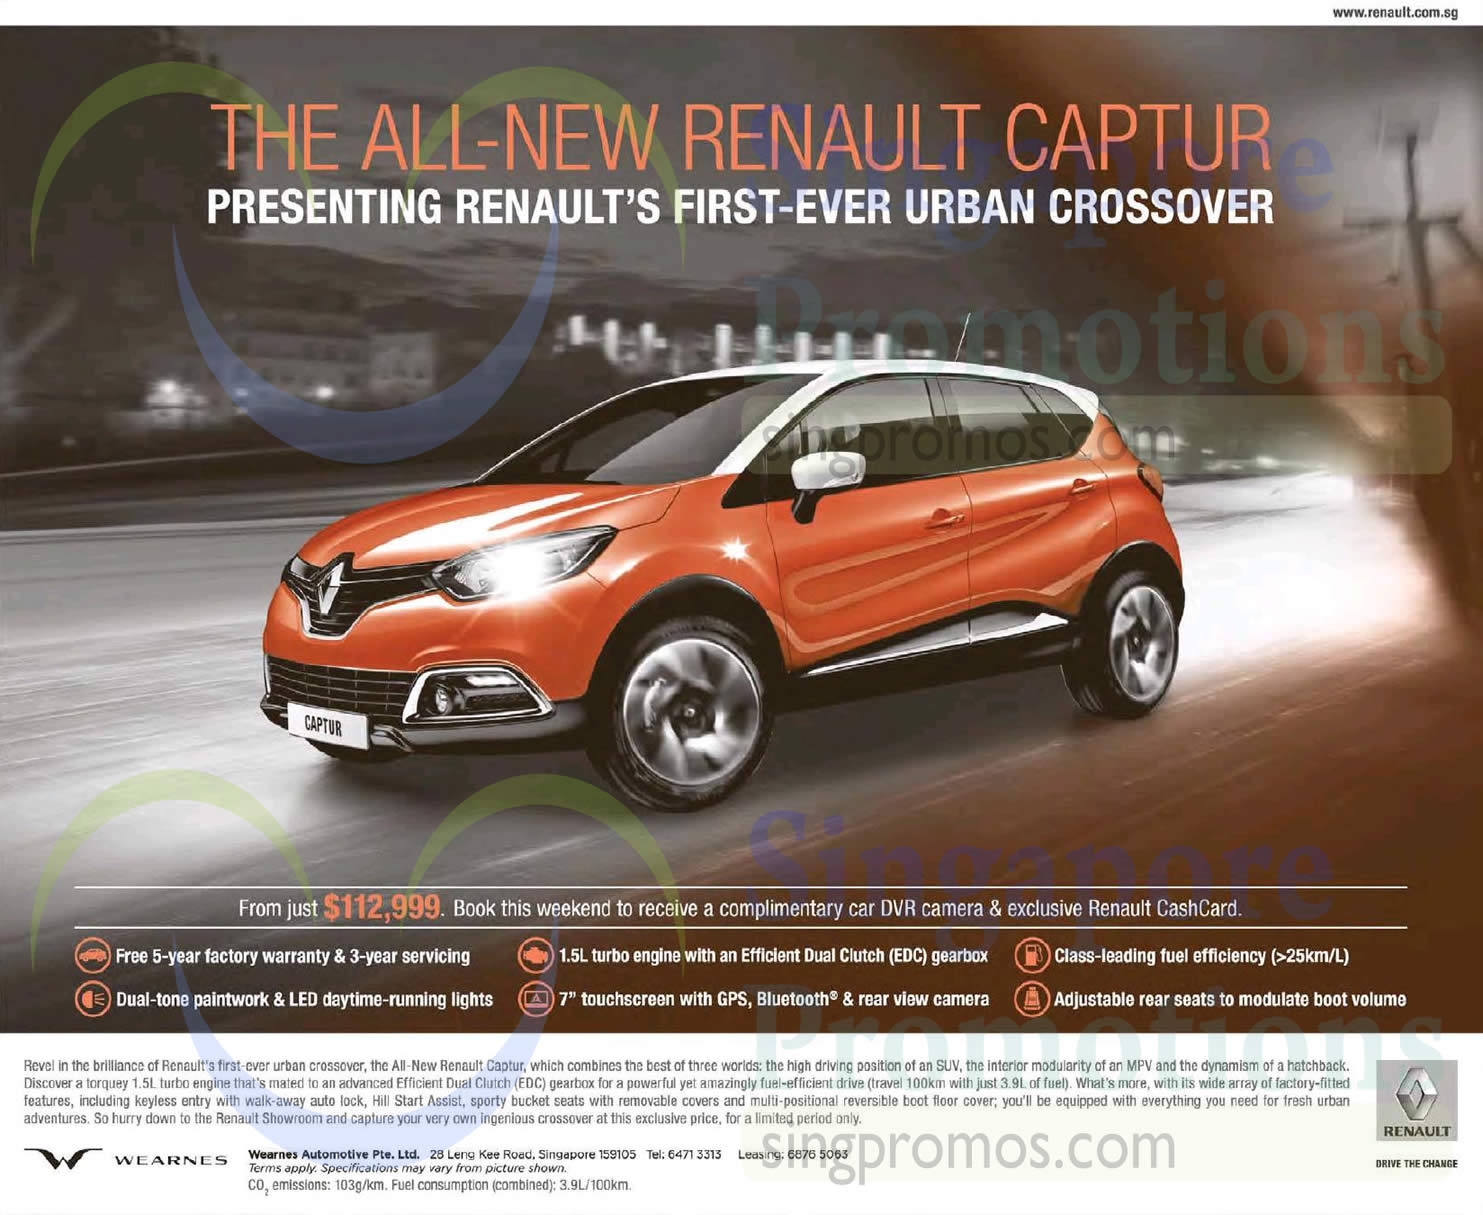 renault 21 feb 2015 renault captur offer 21 feb 2015. Black Bedroom Furniture Sets. Home Design Ideas